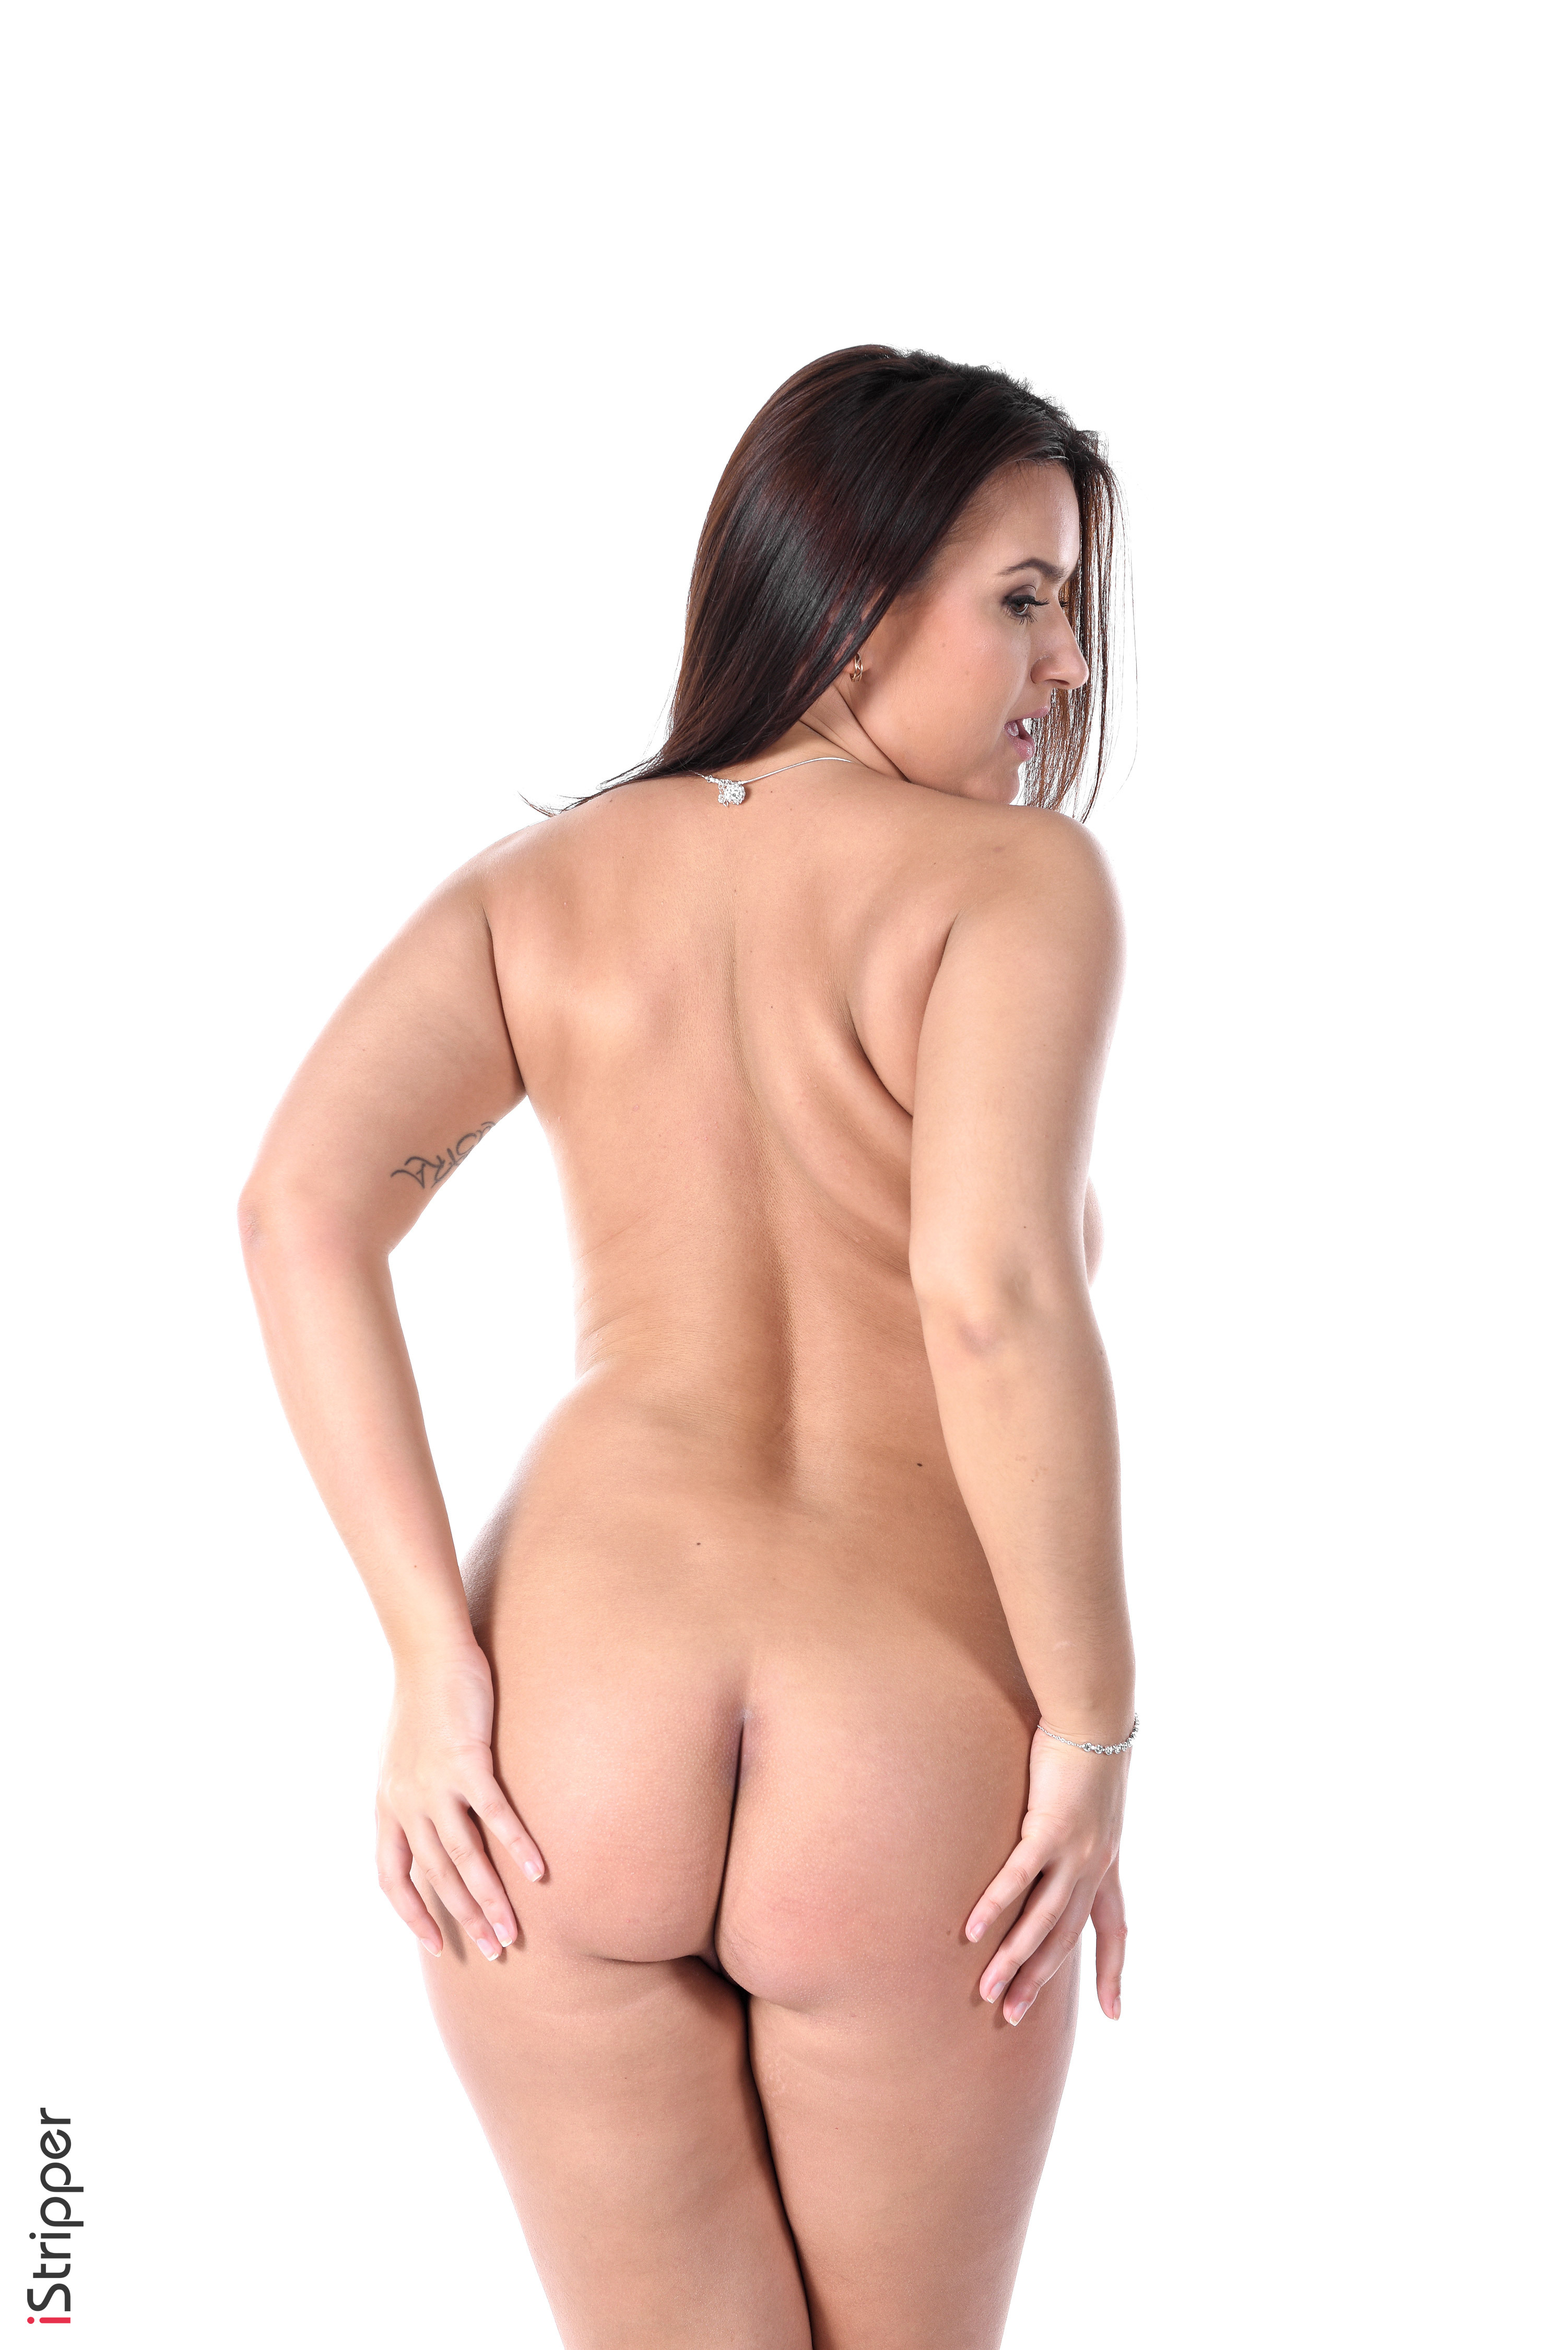 hot pussy s free